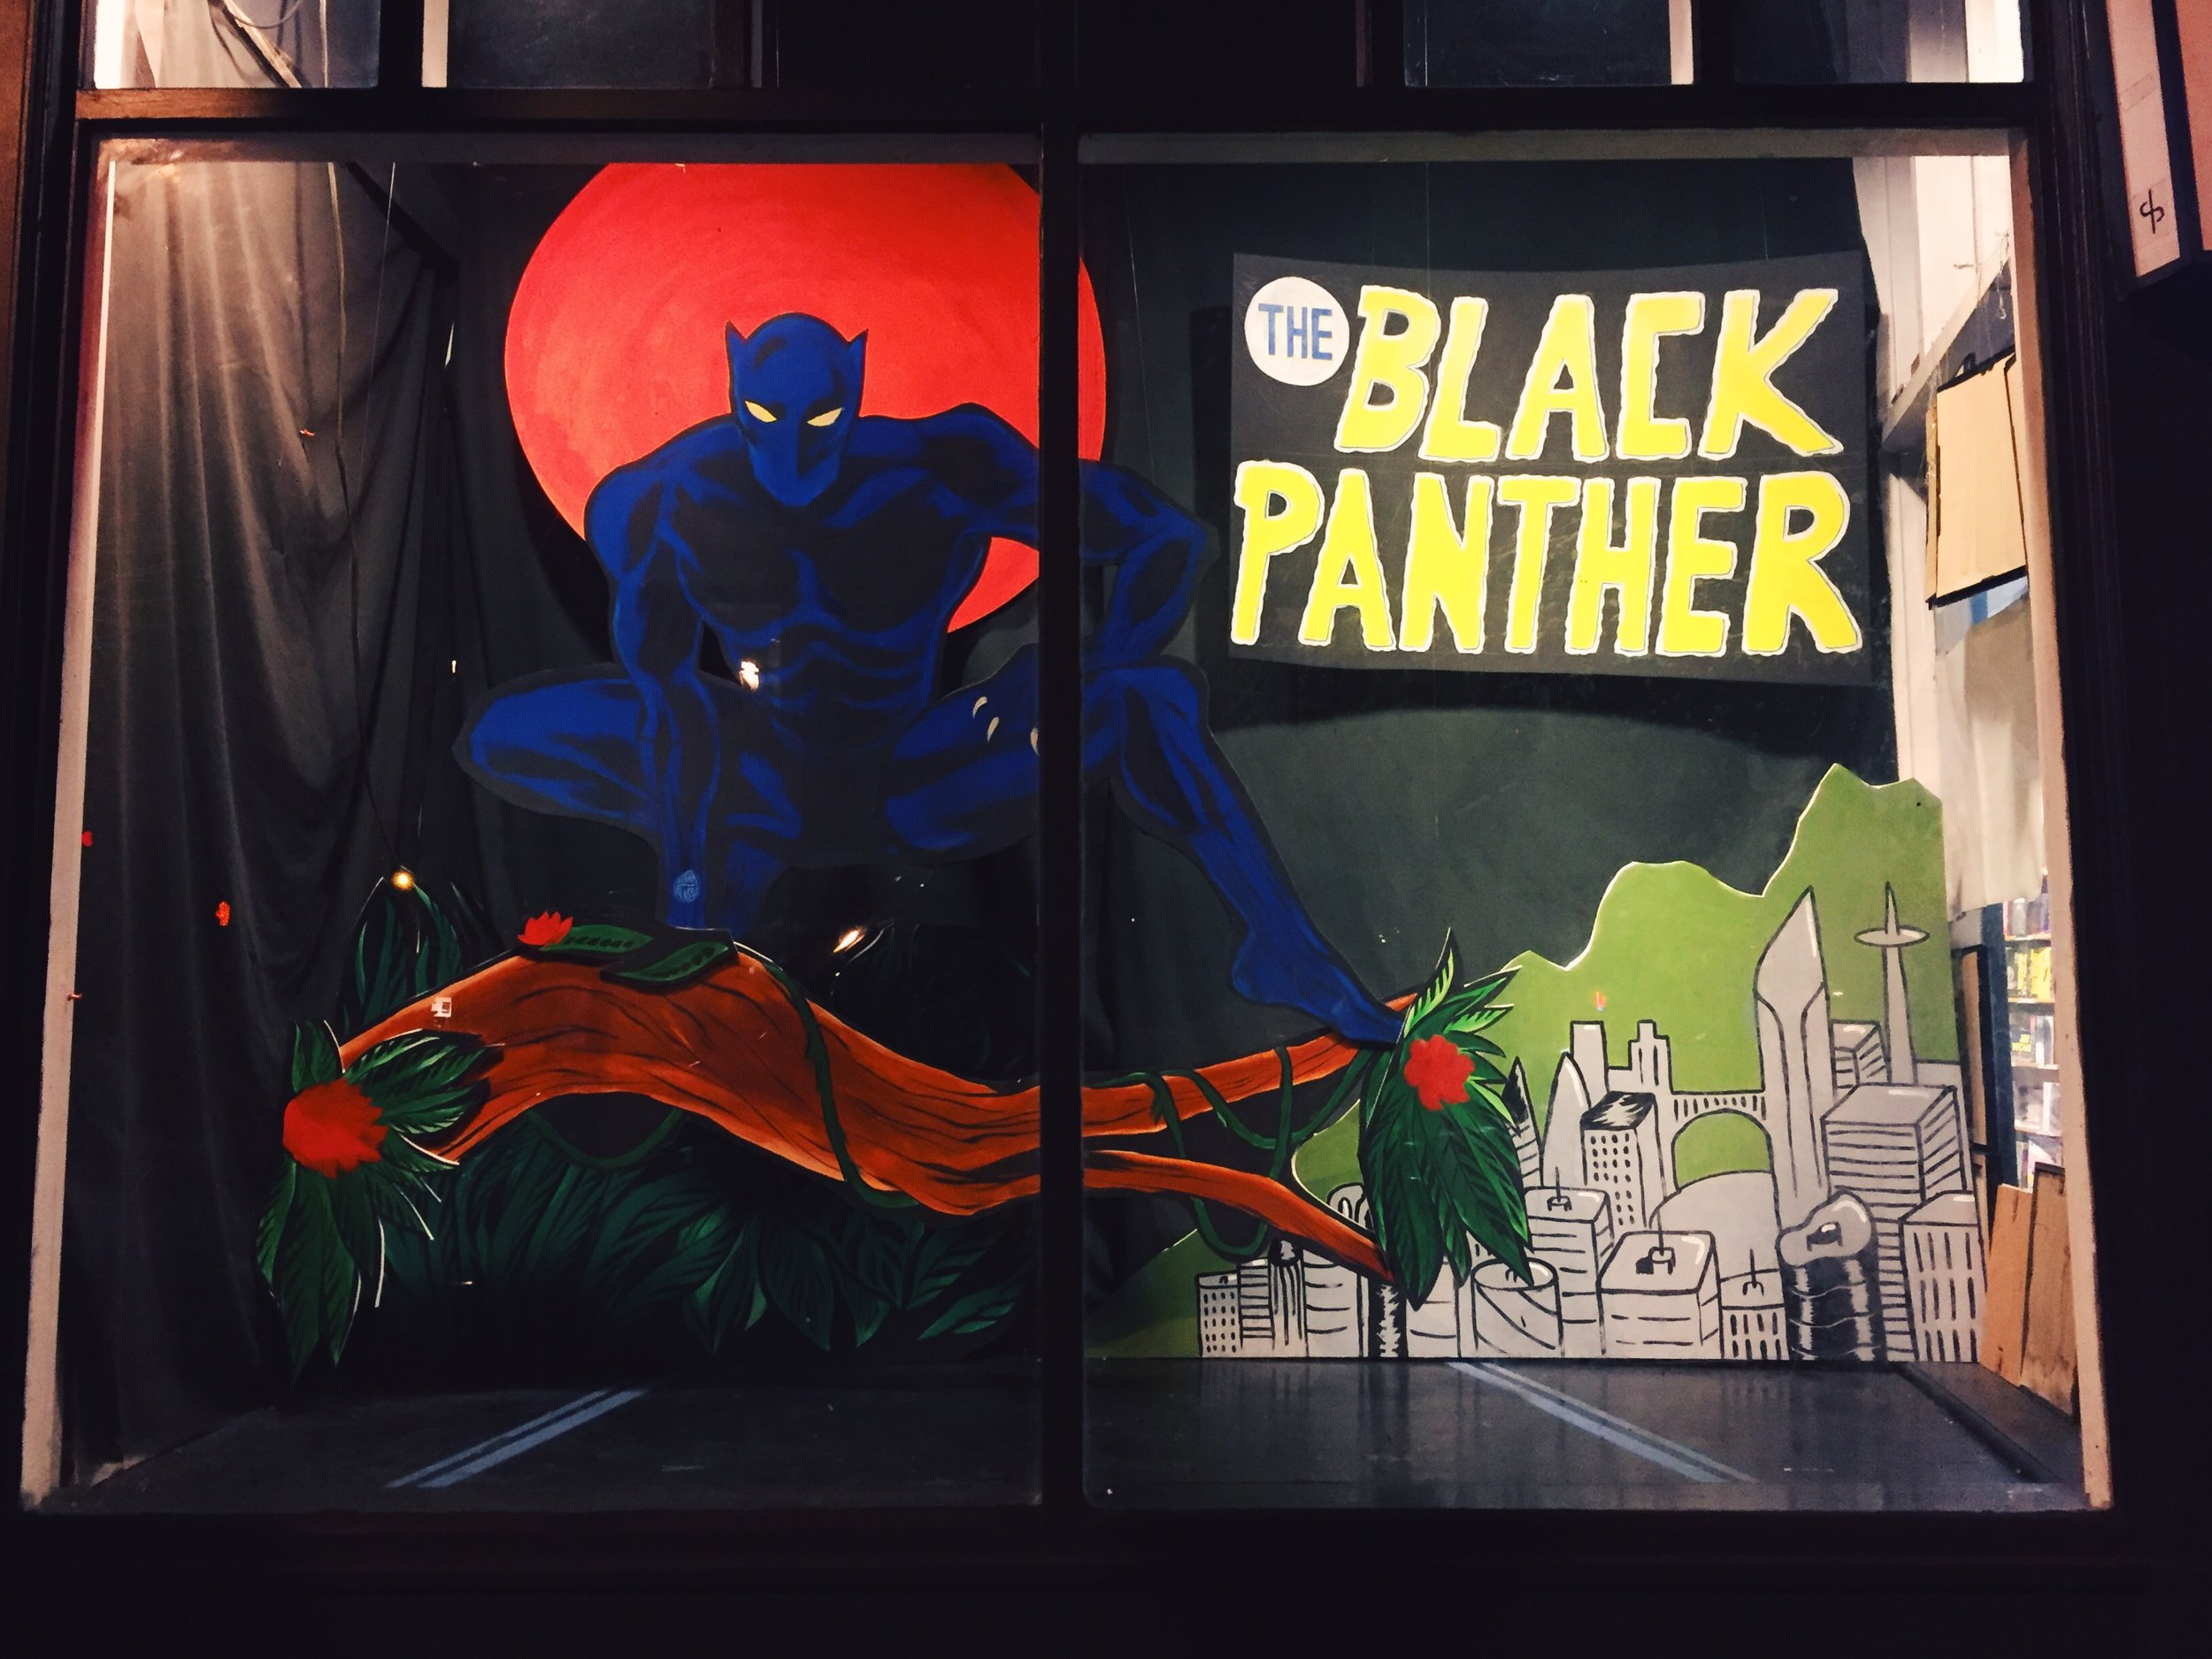 The Black Panther. Black Panther (c) Marvel. Done for the movie release February 2018.